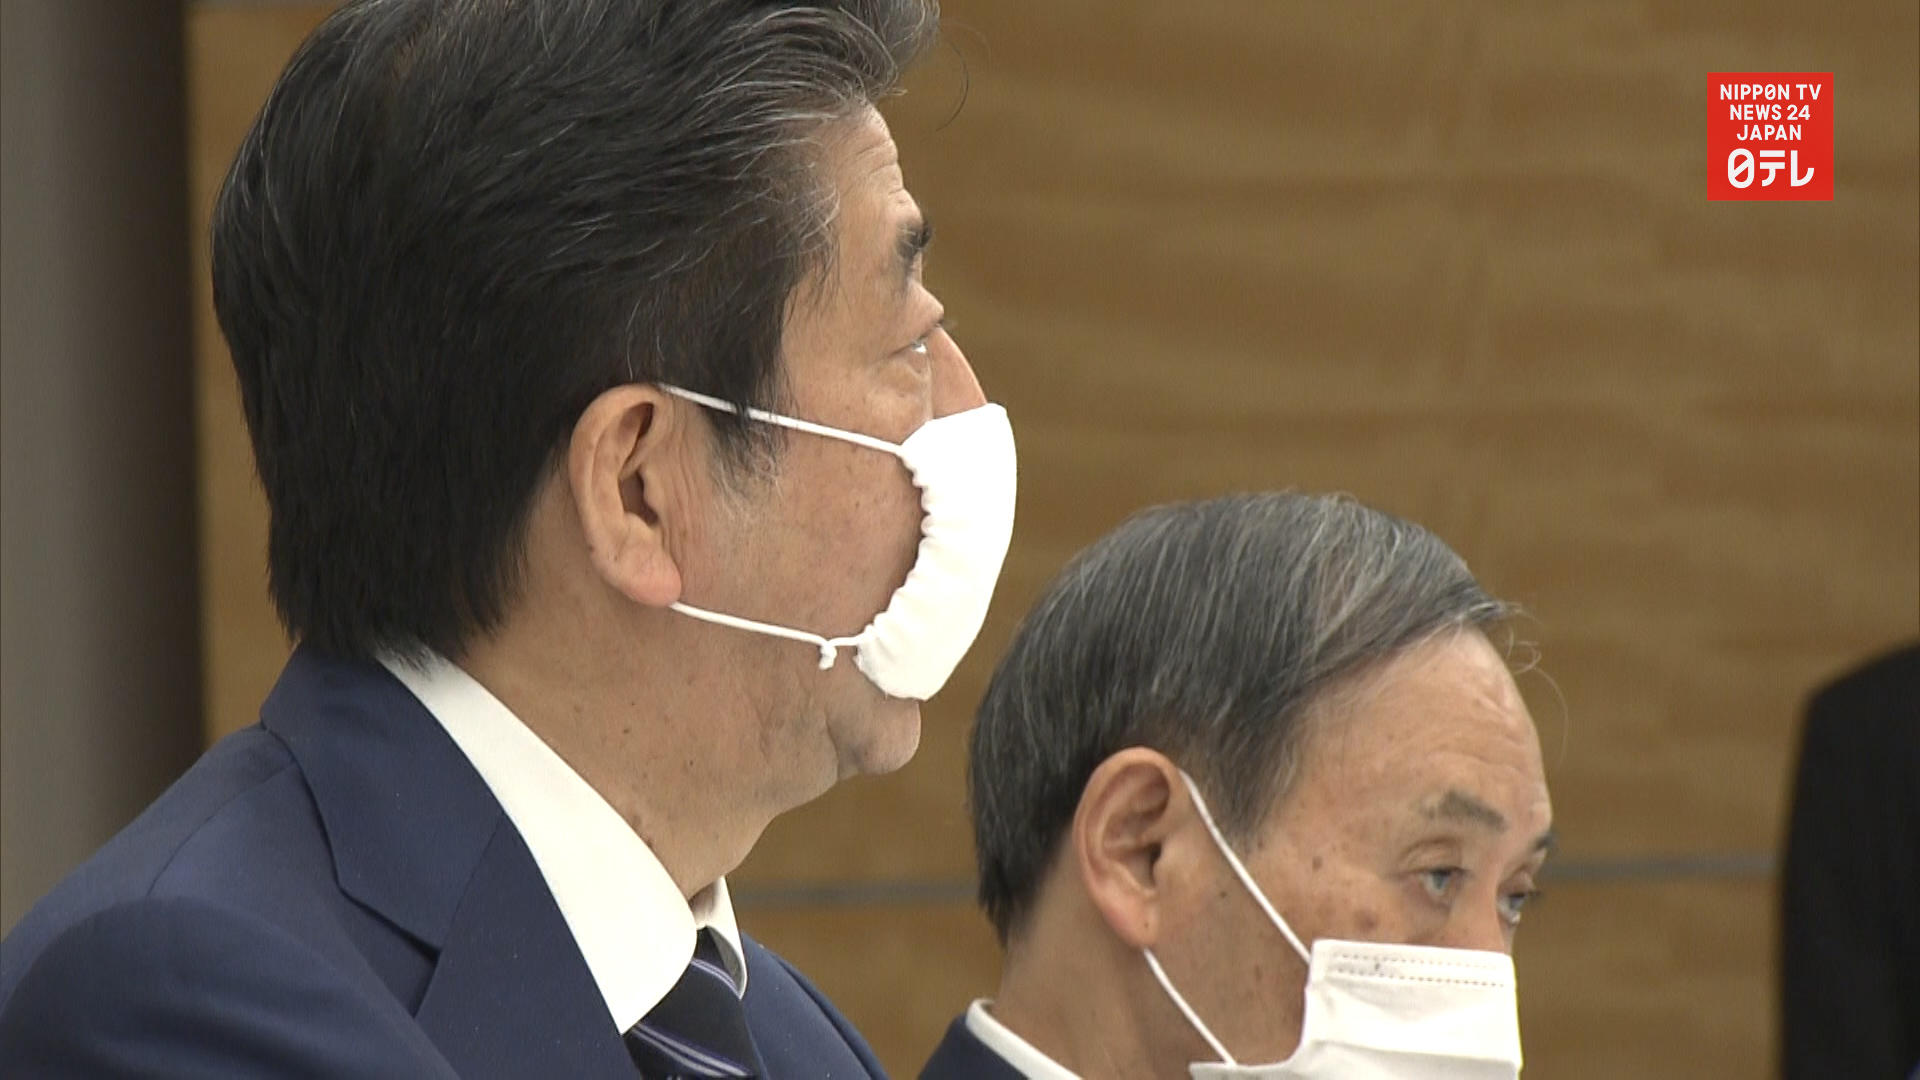 Japan to deliver 2 masks each to 50 million households nationwide